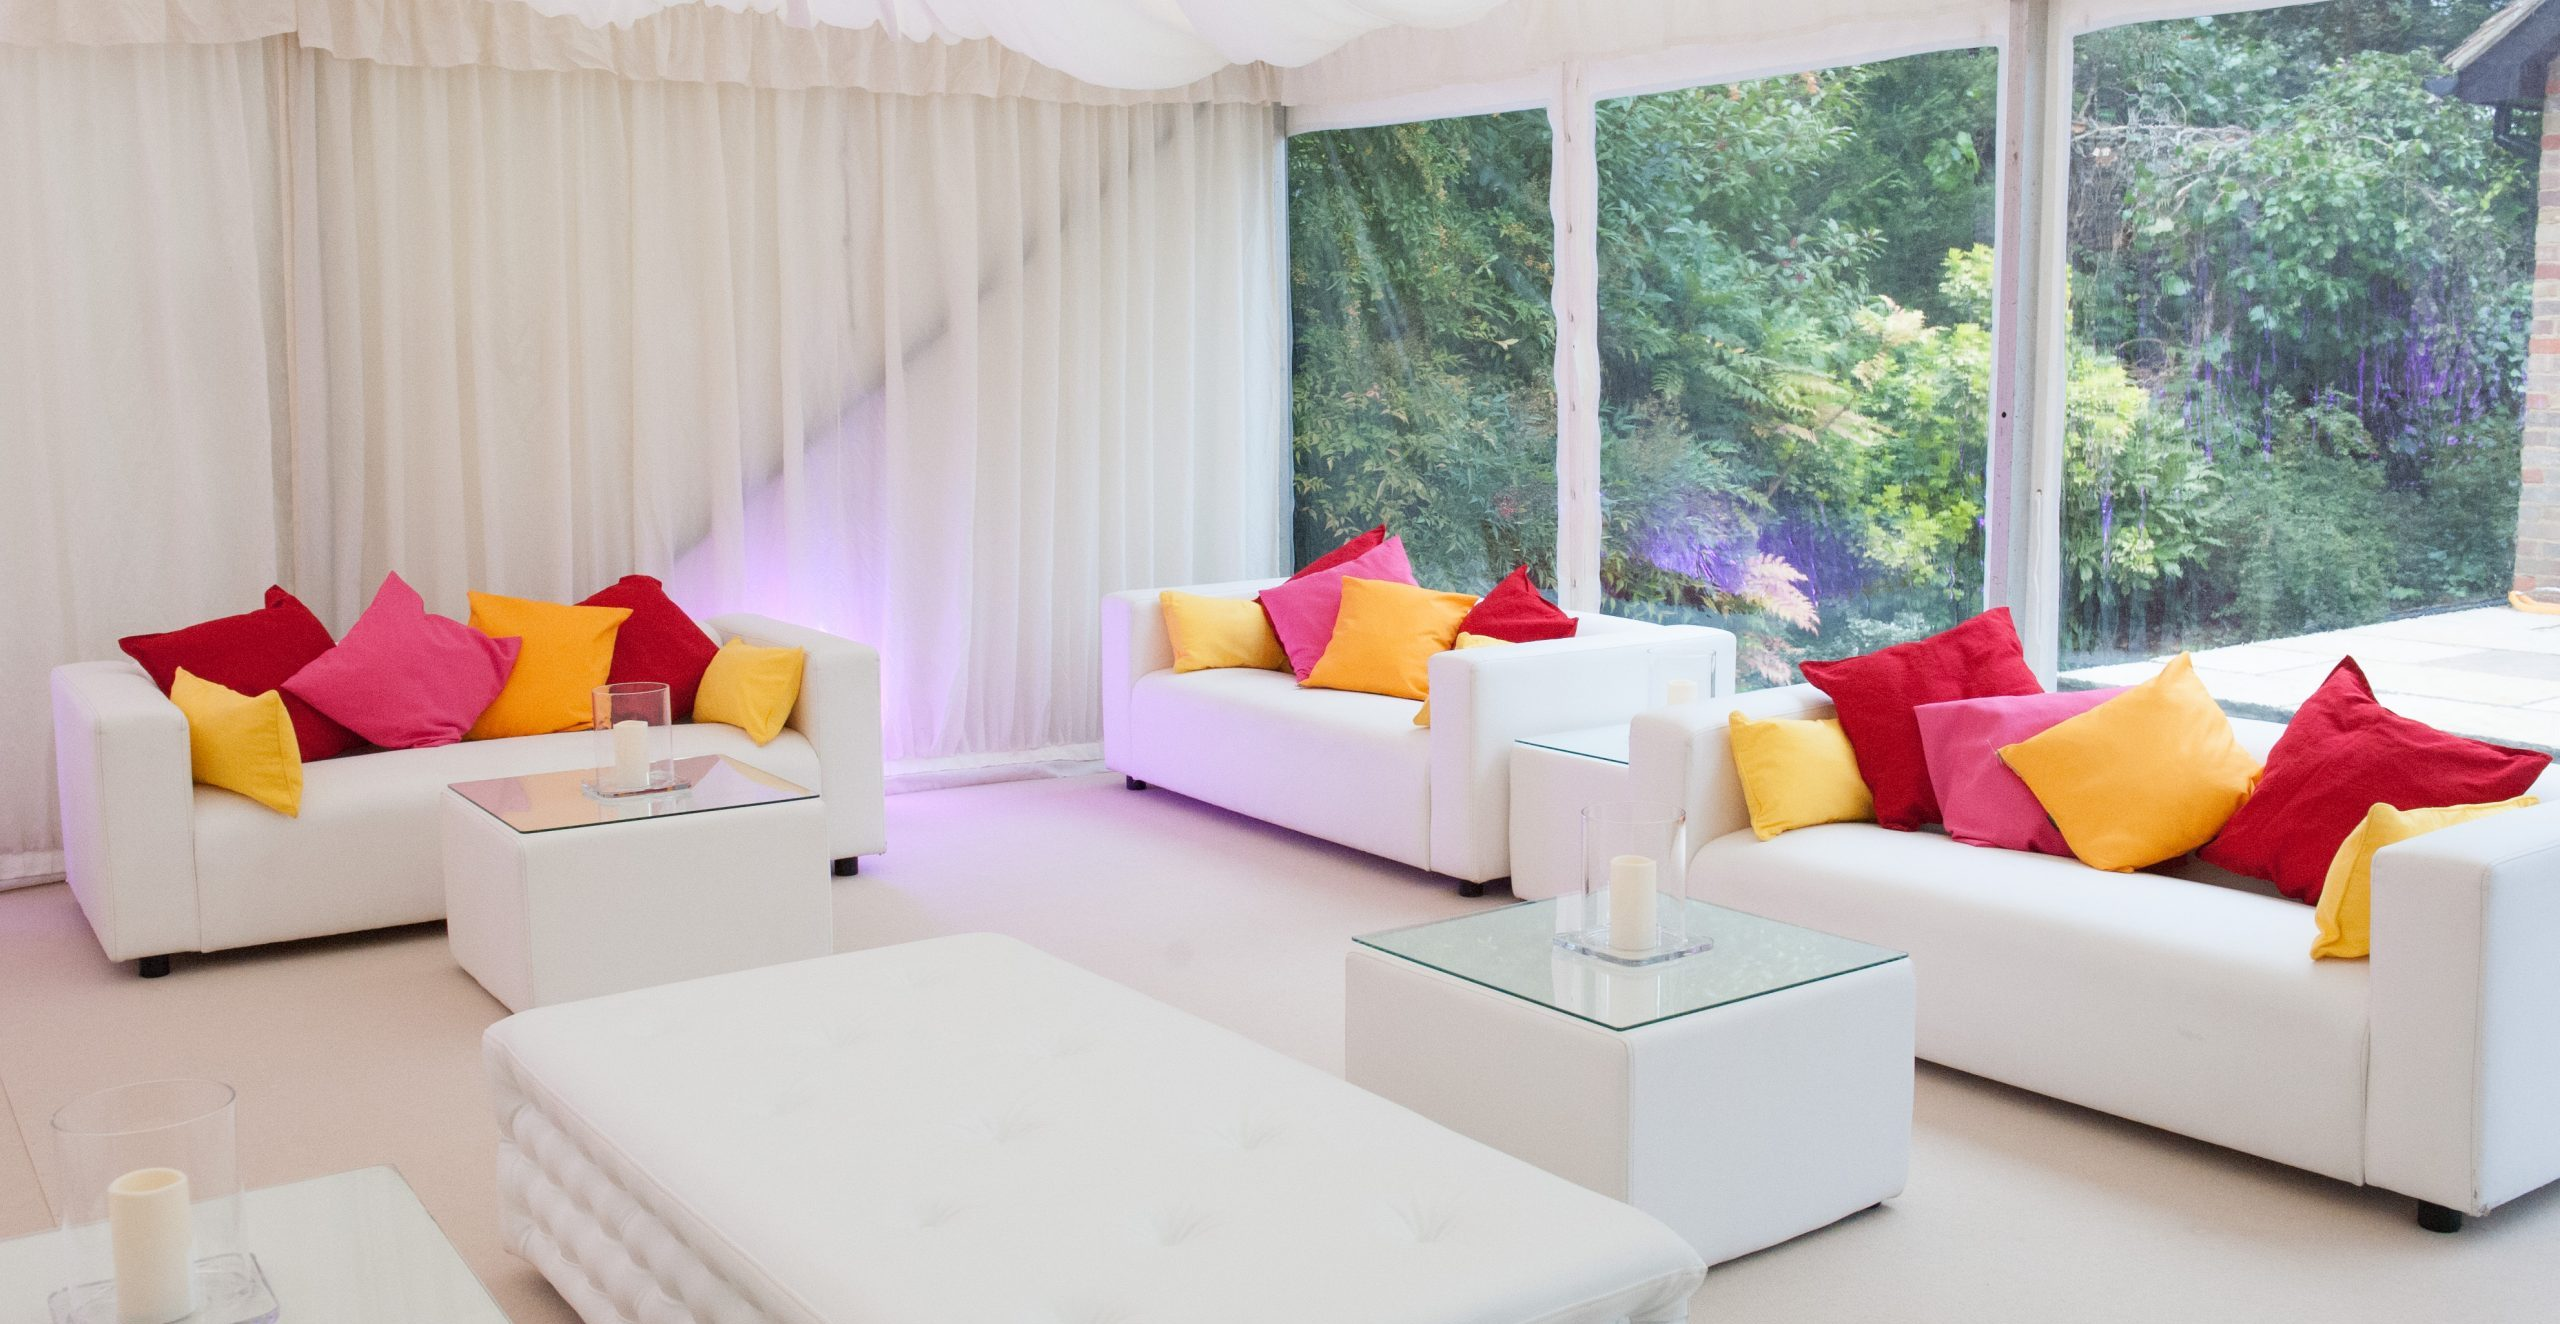 marquee furniture hire: chesterfield benches and white sofas bright cushions